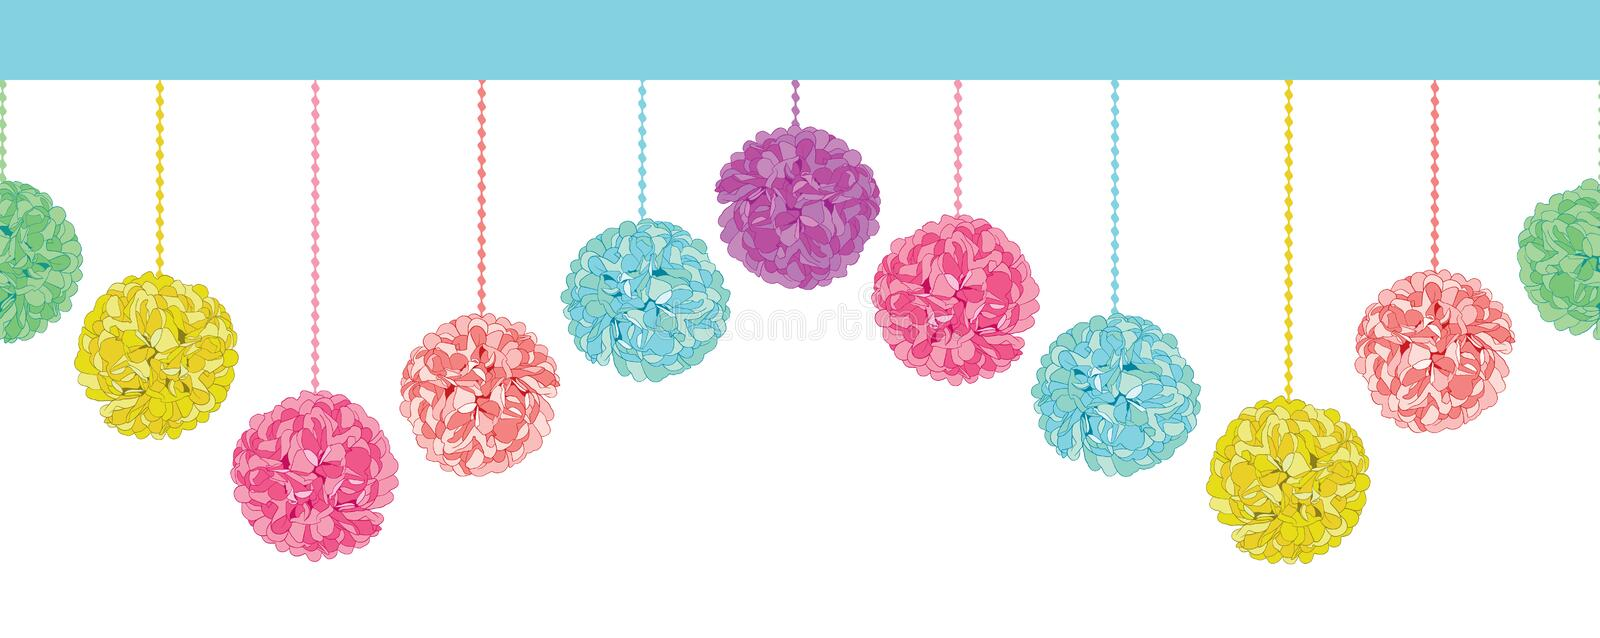 Vector Fun Set of Hanging Pastel Colorful Birthday Party Paper Pom Poms Set Horizontal Seamless Repeat Border Pattern stock illustration